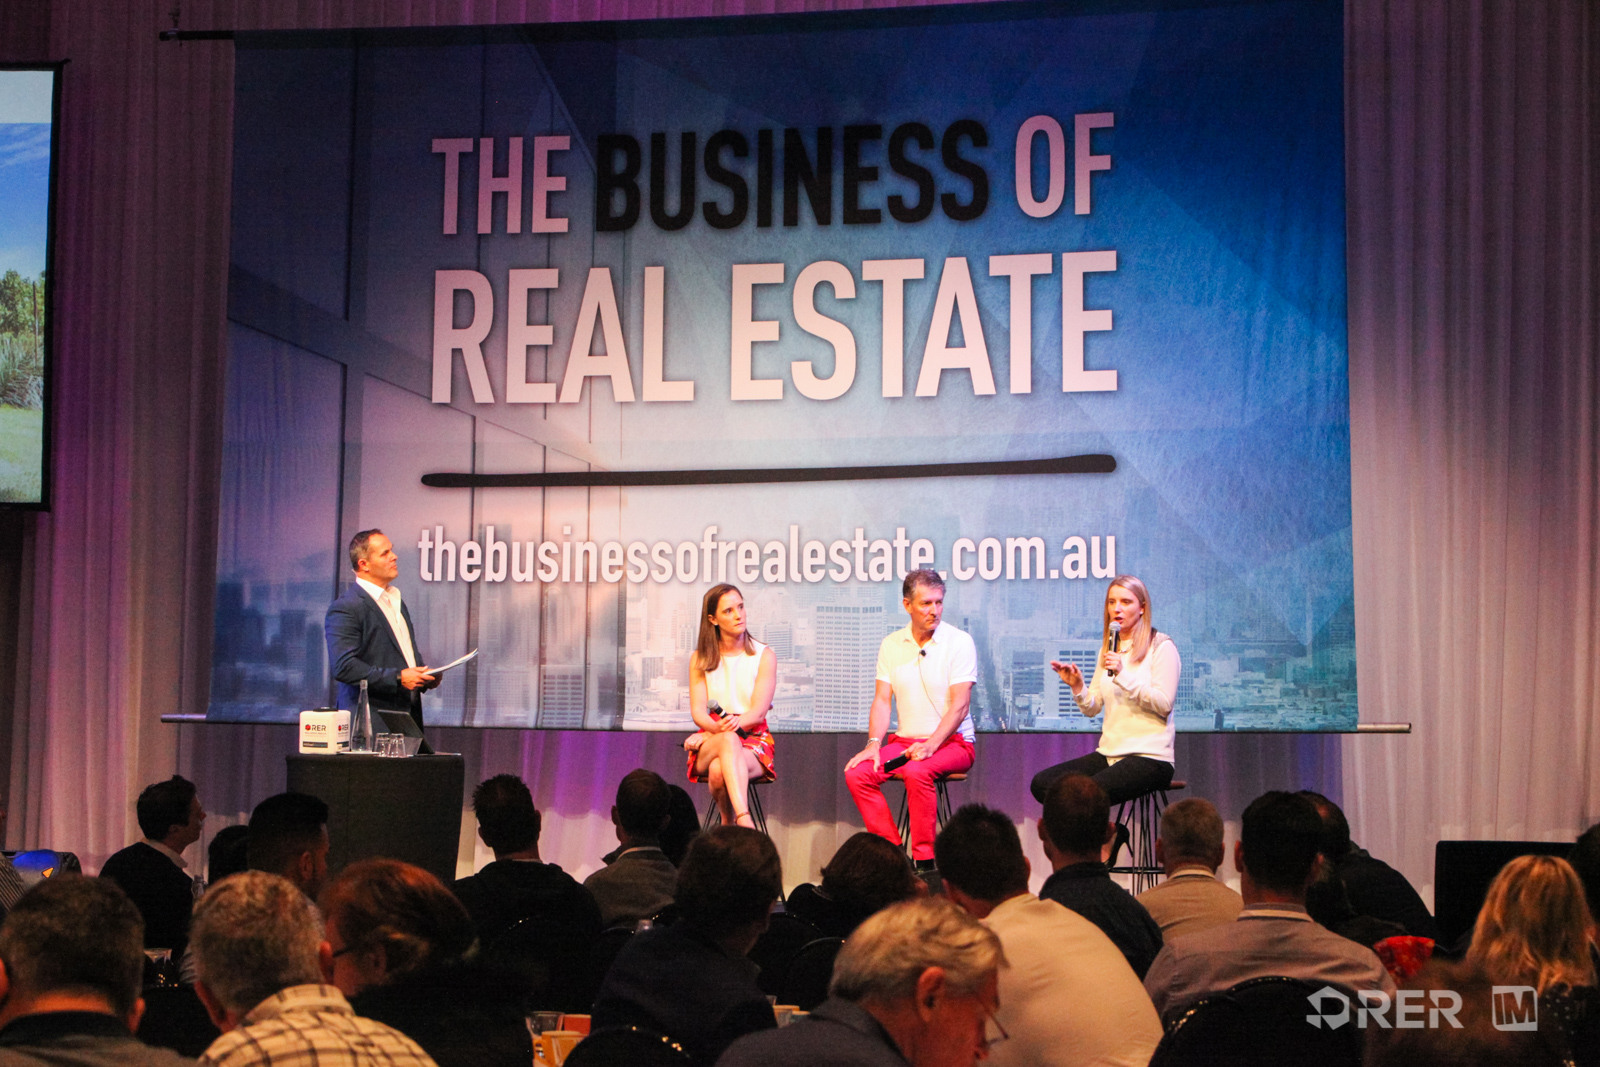 https://www.thebusinessofrealestate.com.au/wp-content/uploads/2017/09/39342_RER_THE_BUSINESS_OF_REAL_ESTATE_DAY2_LR-57.jpg